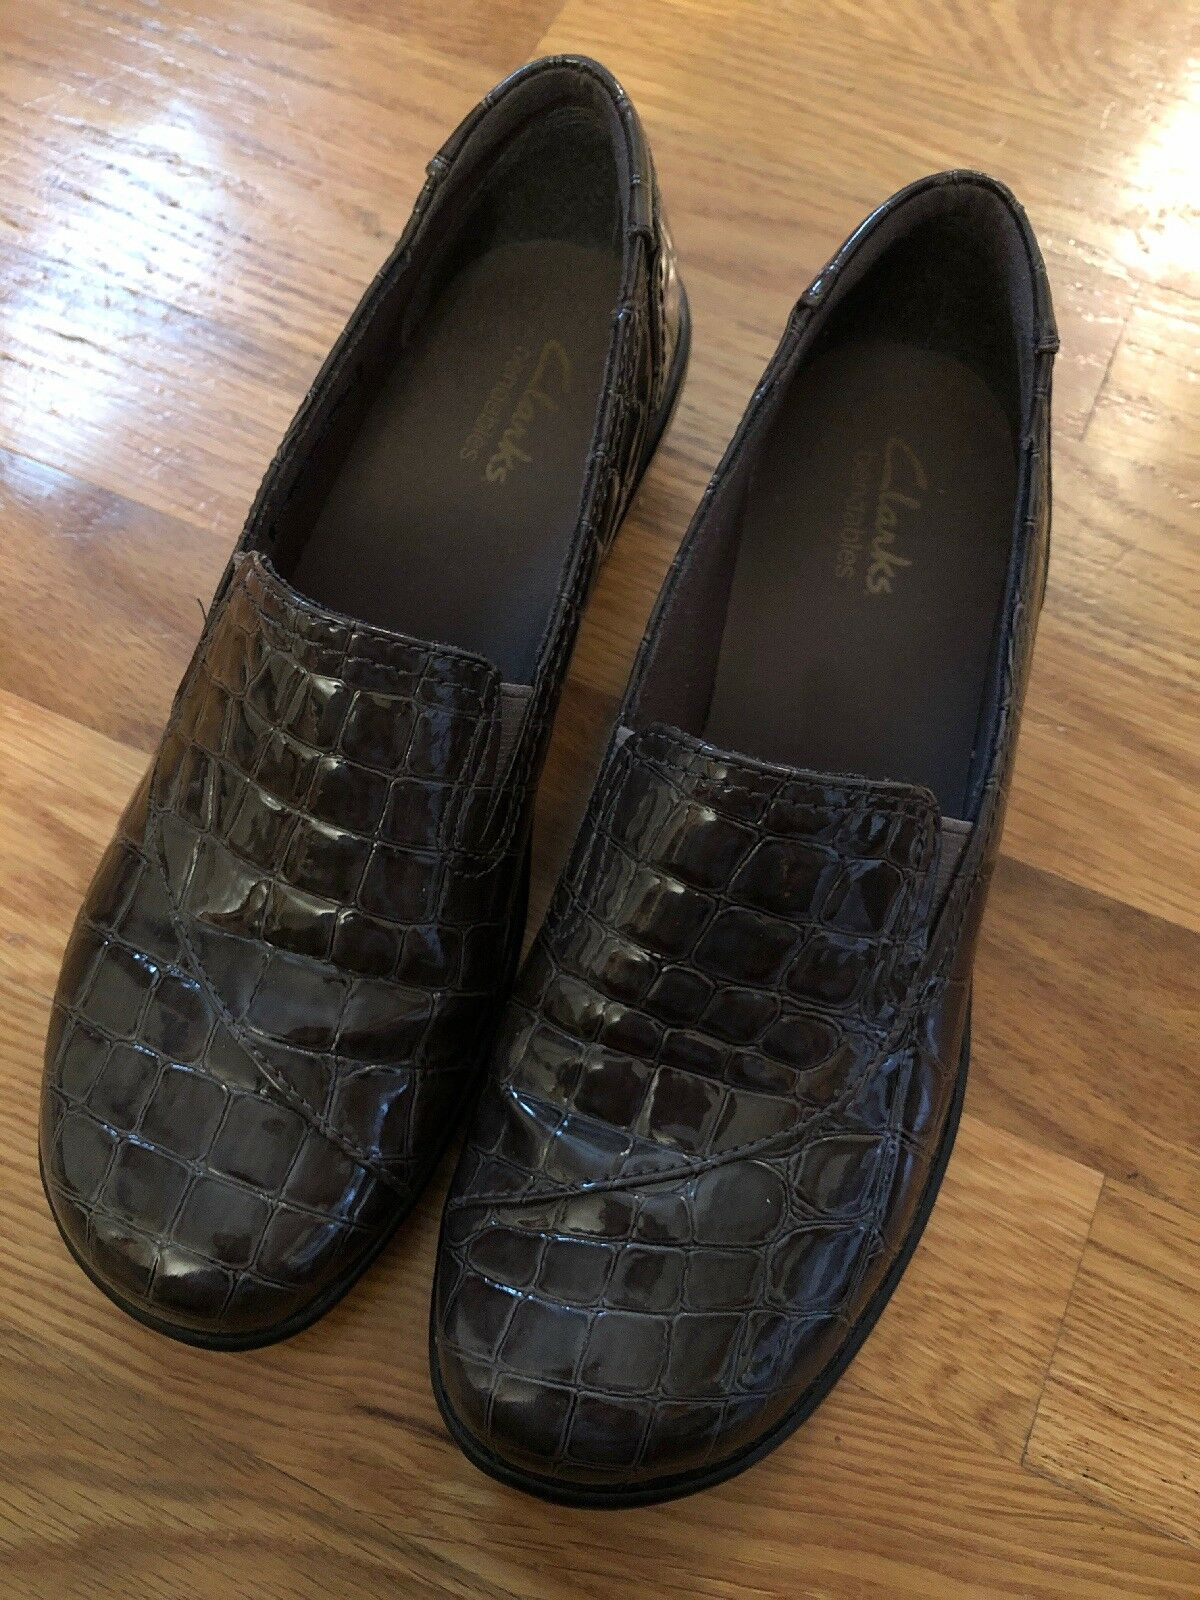 Clark's May May May Poppy damen's 6.5M In Charcoal grau Slip-on schuhe Clogs 56d229